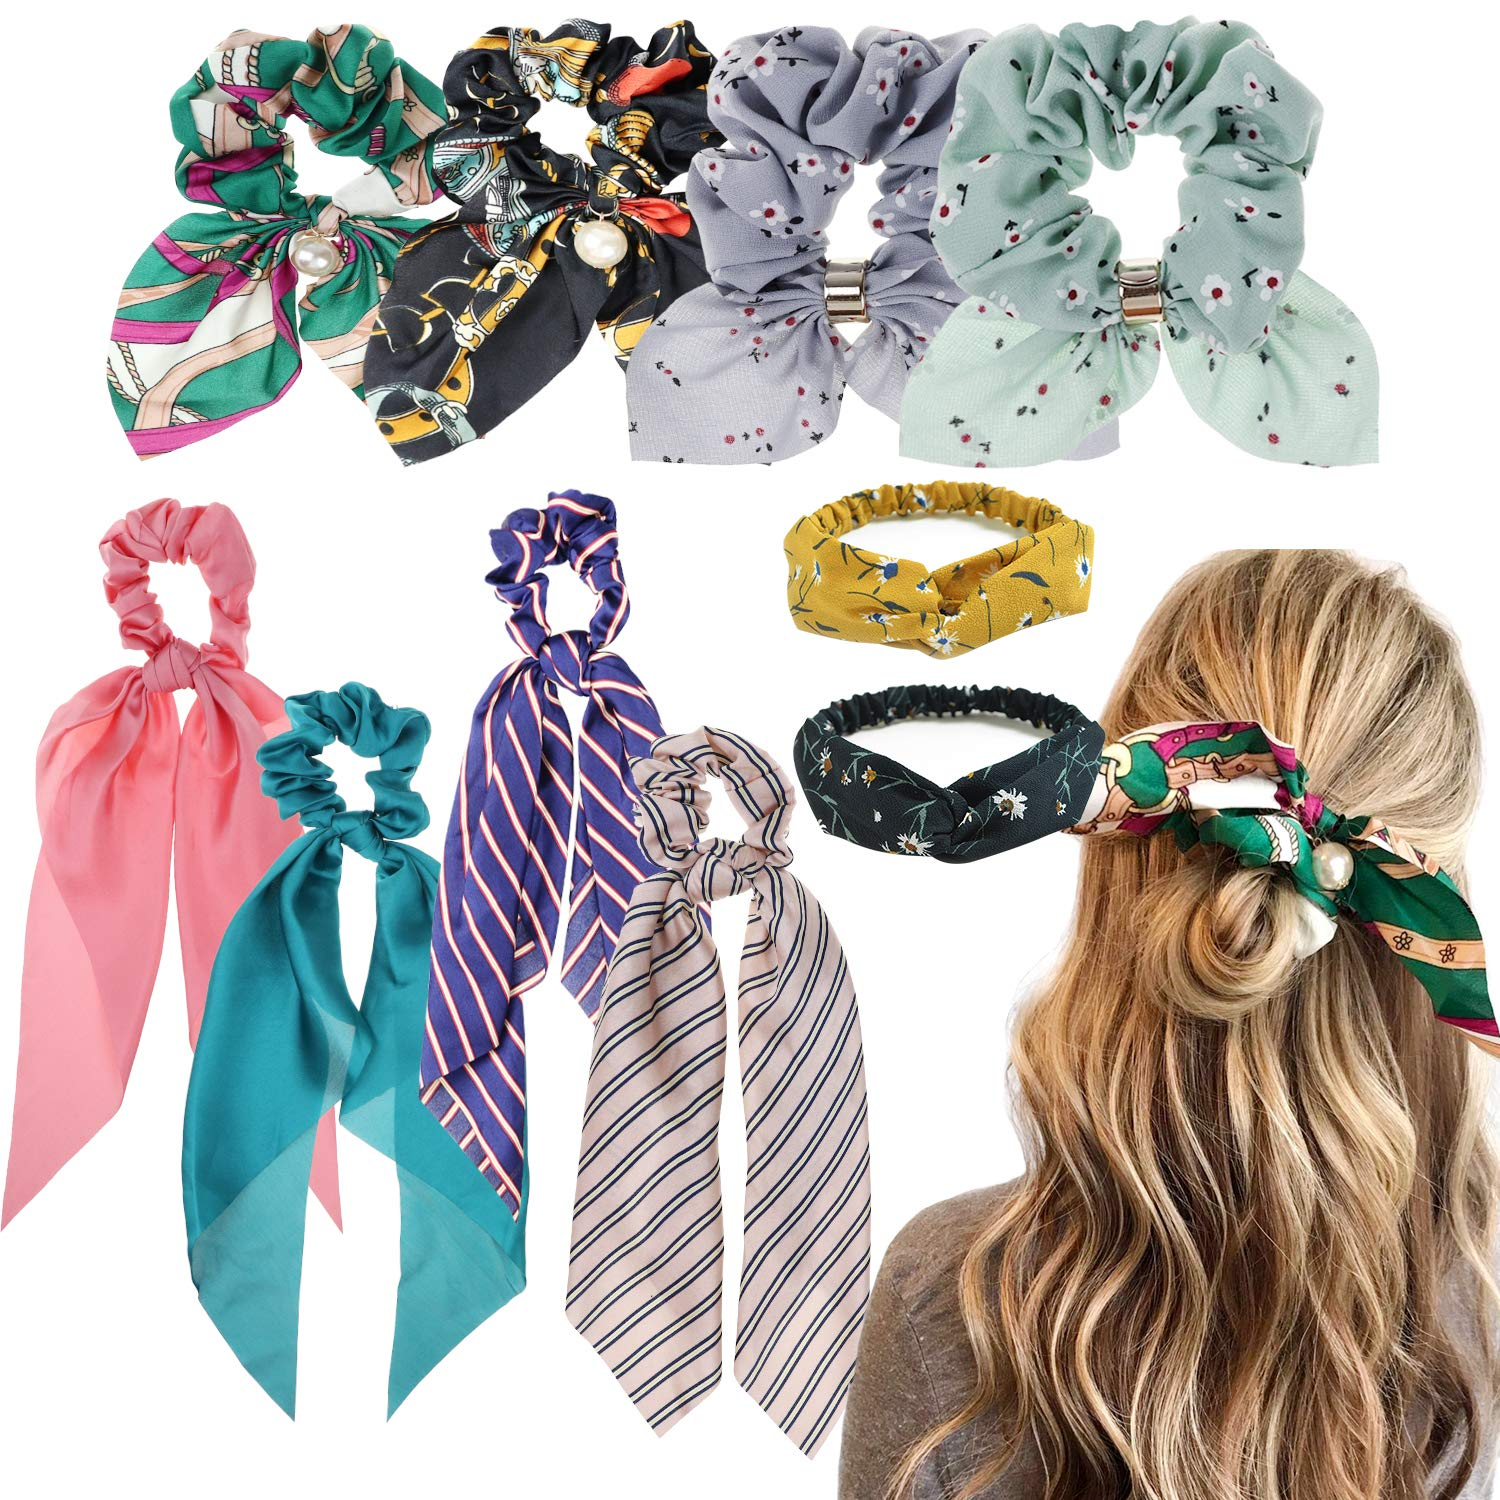 DRESHOW Cross Headbands Vintage Elastic Head Wrap Stretchy Moisture Hairband Twisted Cute Hair Accessories Pack 4/10 (10 Pack: 8 hair scarves + 2 headbands)